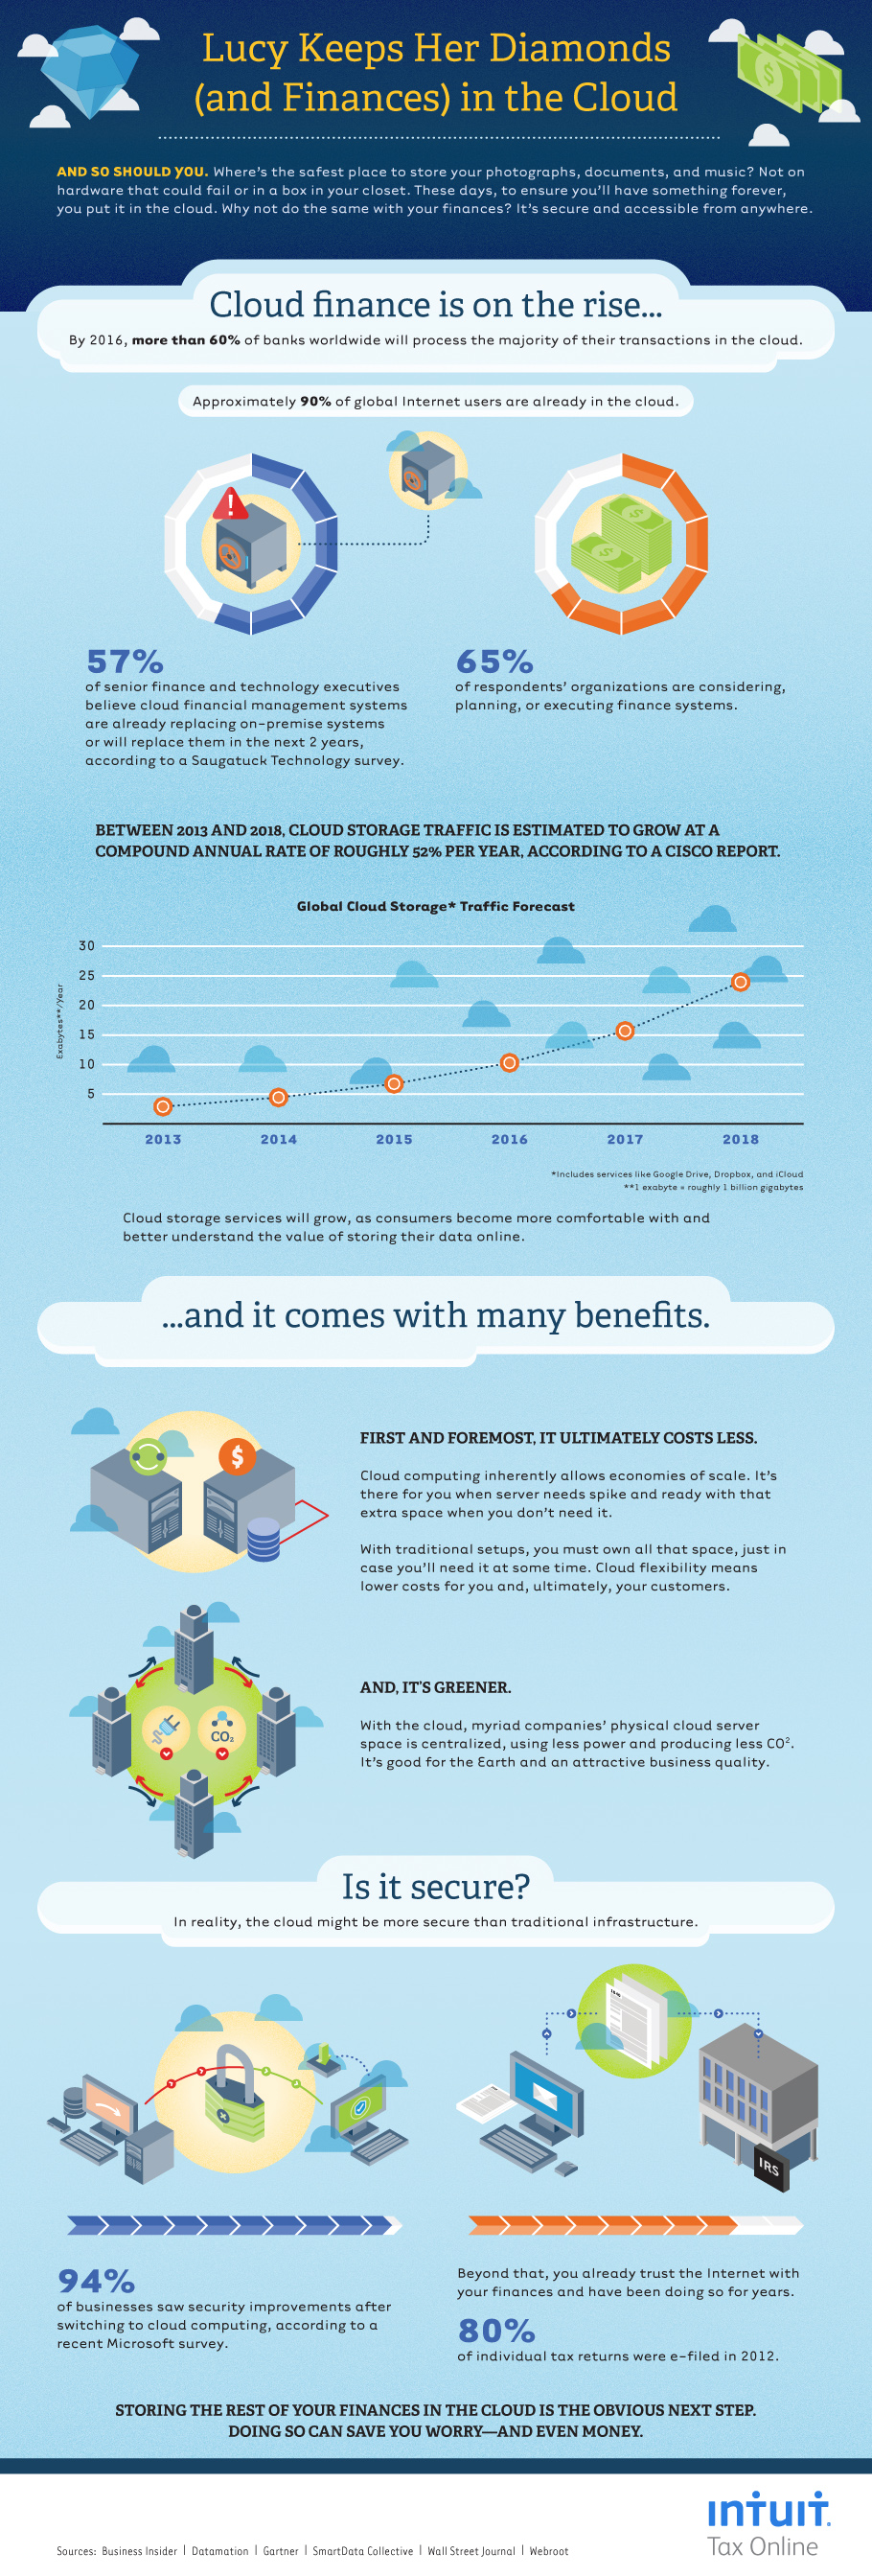 intuit infographic on cloud based storage